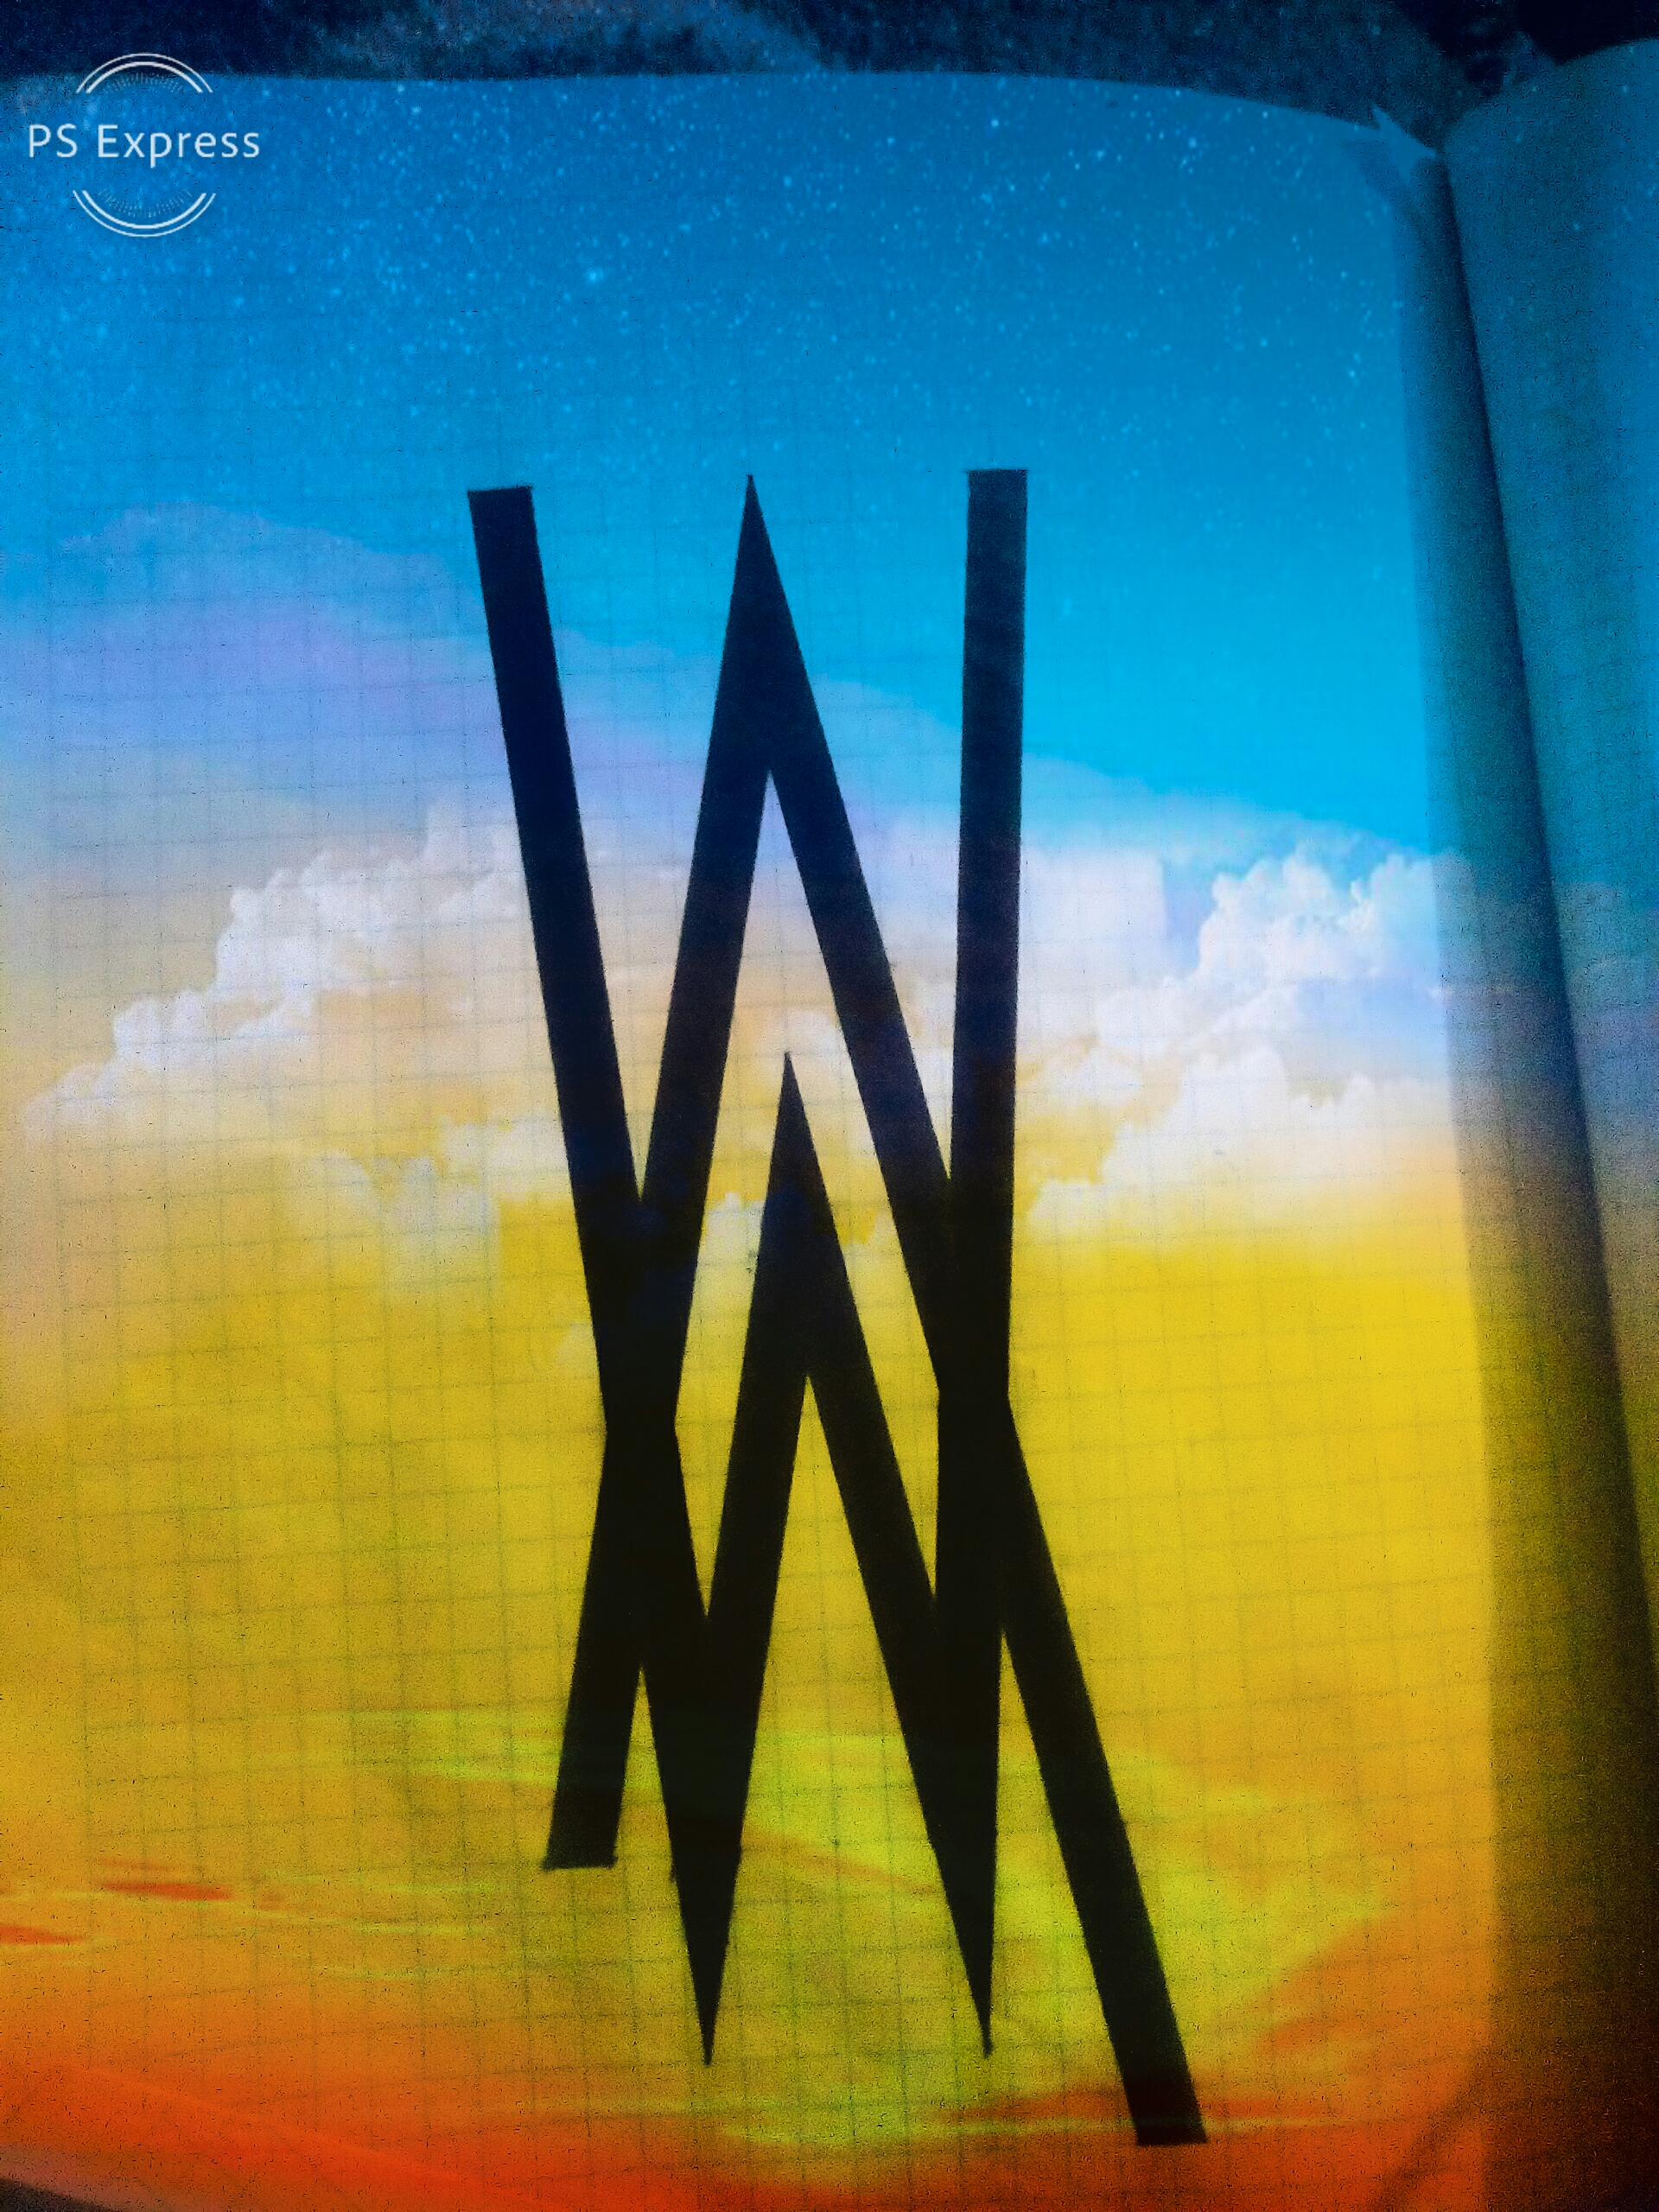 File Alan Walker Logo Jpg Wikimedia Commons See more of mask alan walker logo designing on facebook. https commons wikimedia org wiki file alan walker logo jpg